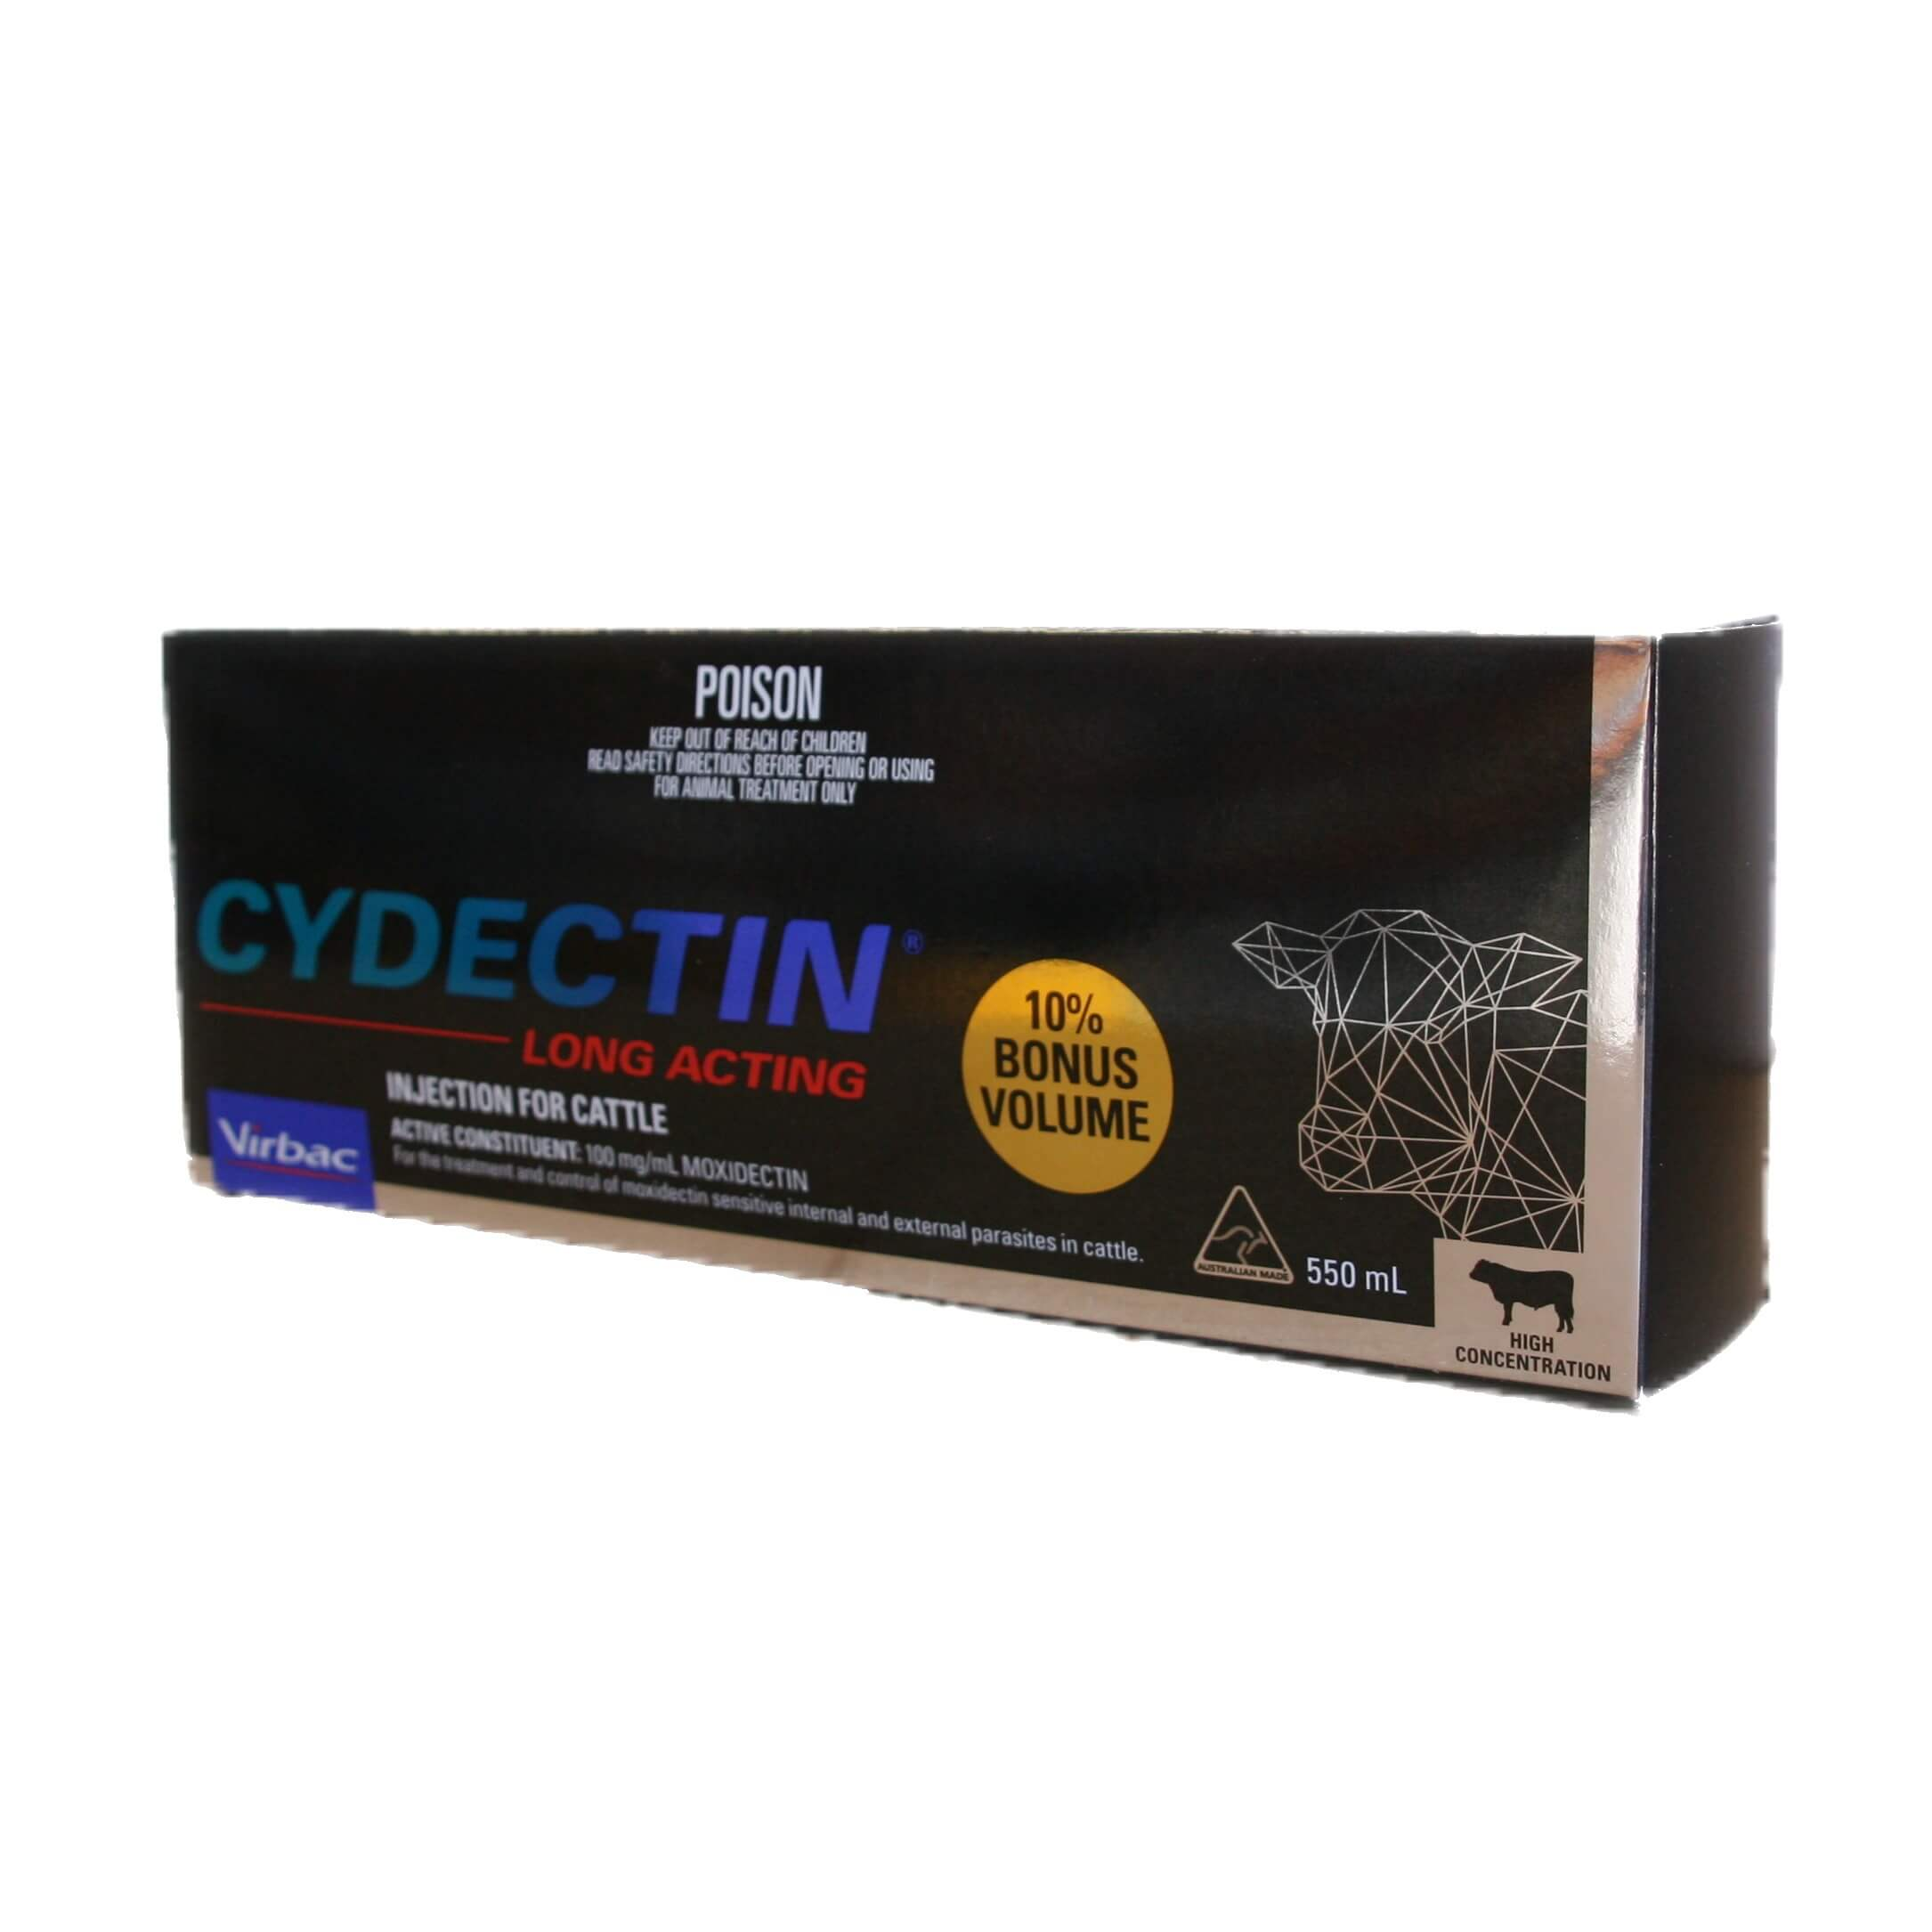 Cydectin LA - Long Acting Injection For Cattle